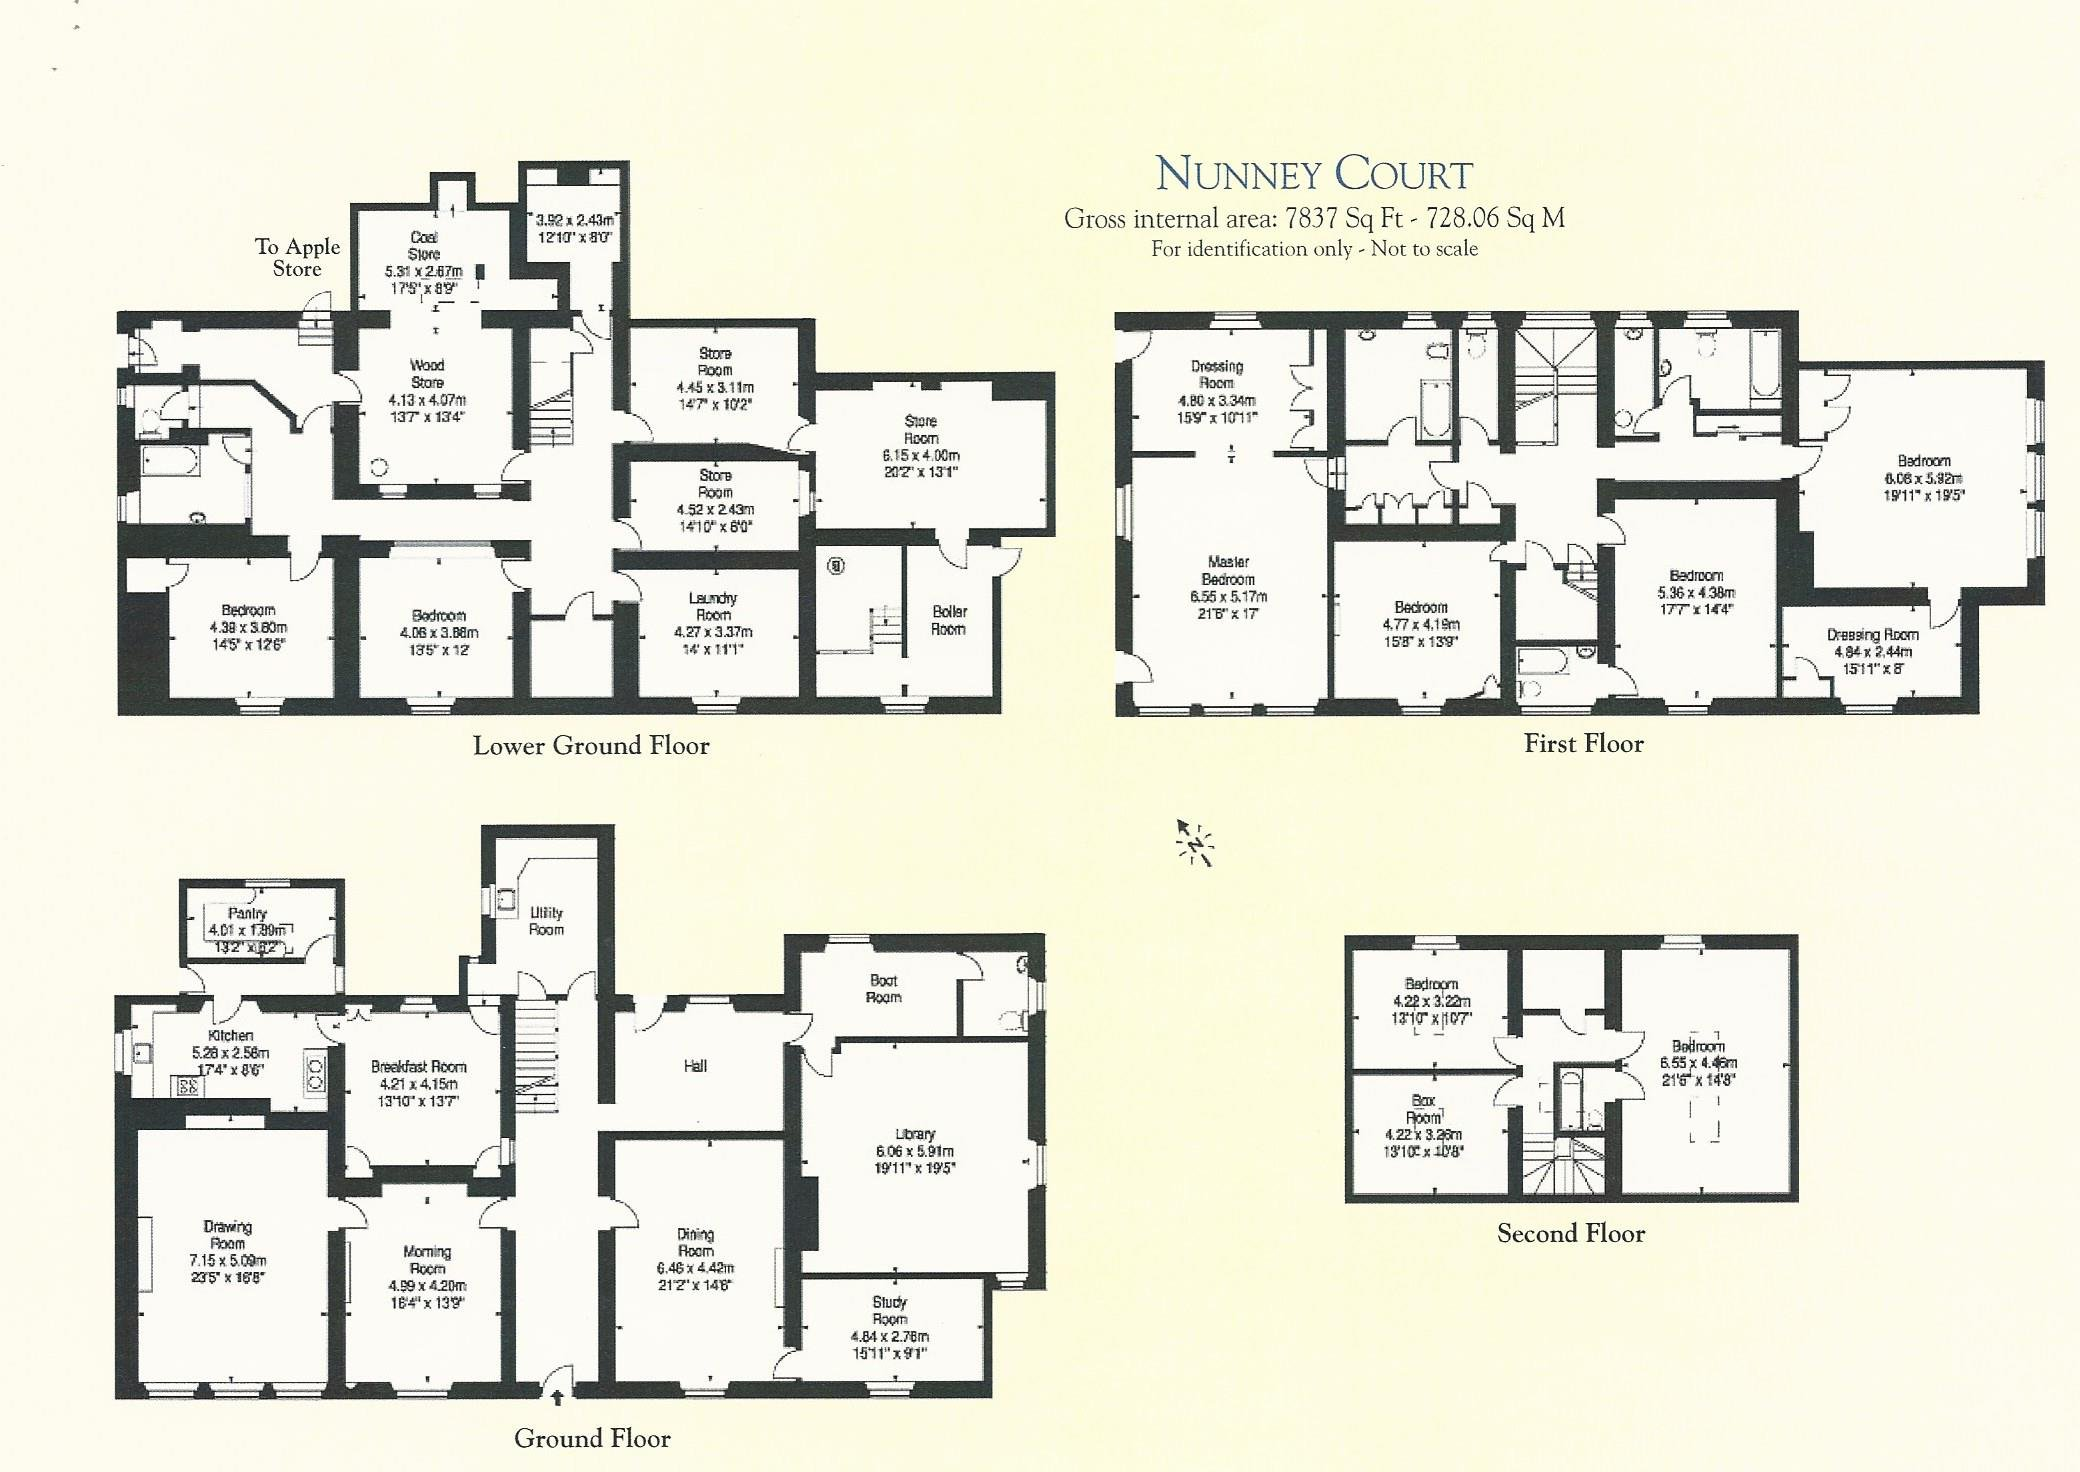 File Linlithgow Palace Floor Plan First Floor besides Les Maisons Aux Usa Styles Les Plus Populaires together with T58482 1 Pro Life As A Supernatural Semi Bl Gl H E1 B4 87 E1 B4 9B E1 B4 87 CA 80 E1 B4 8F besides 7681 together with respond. on medieval manor house floor plan